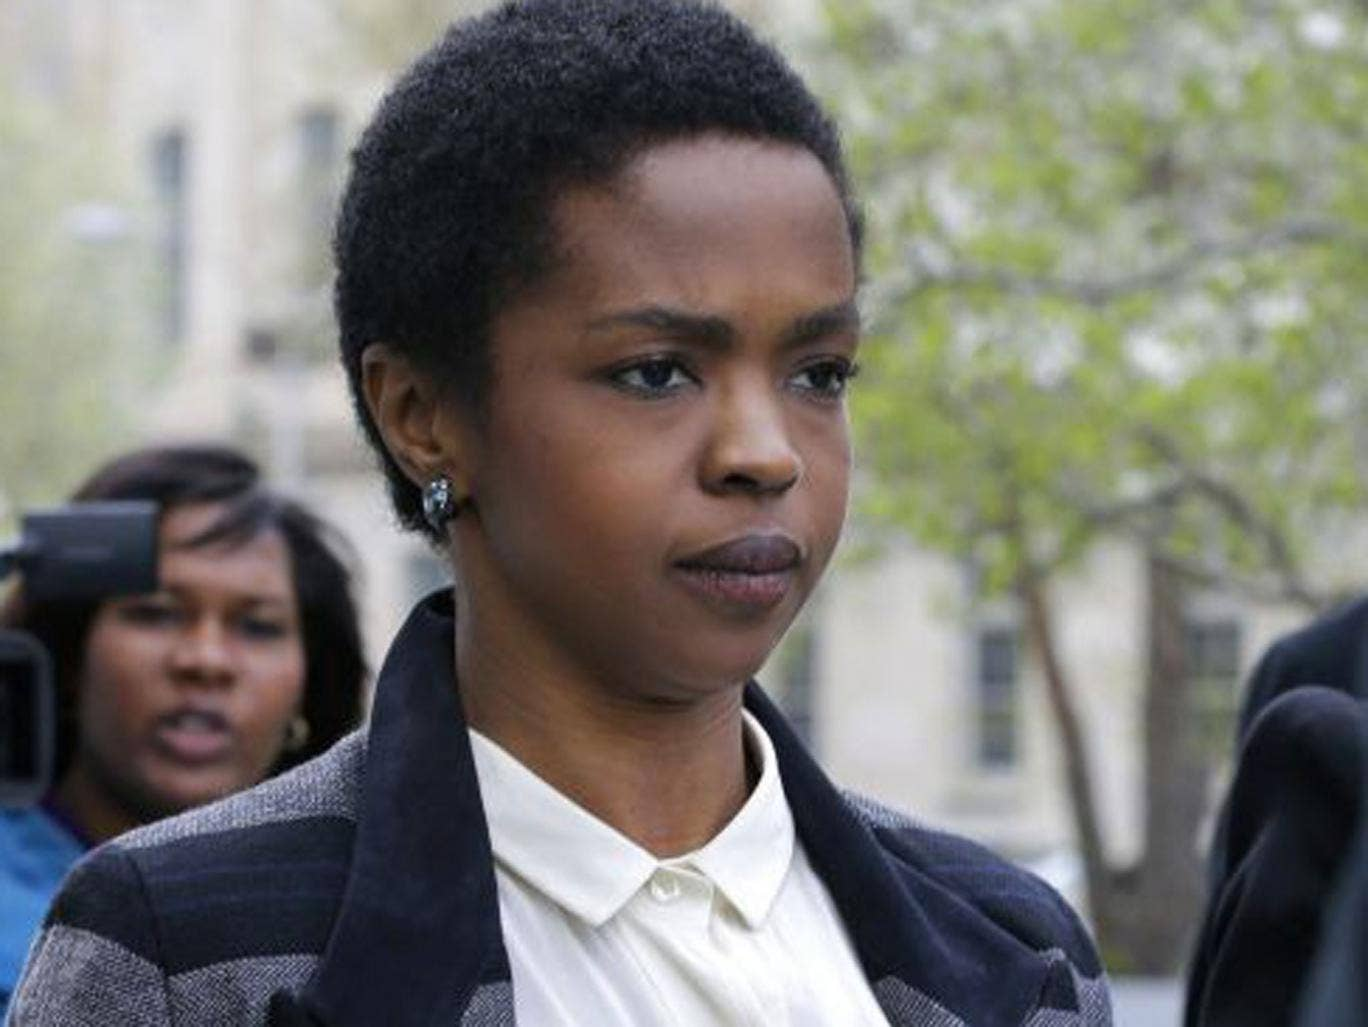 Lauryn Hill pleaded guilty to failing to pay taxes on earnings from 2005 to 2007